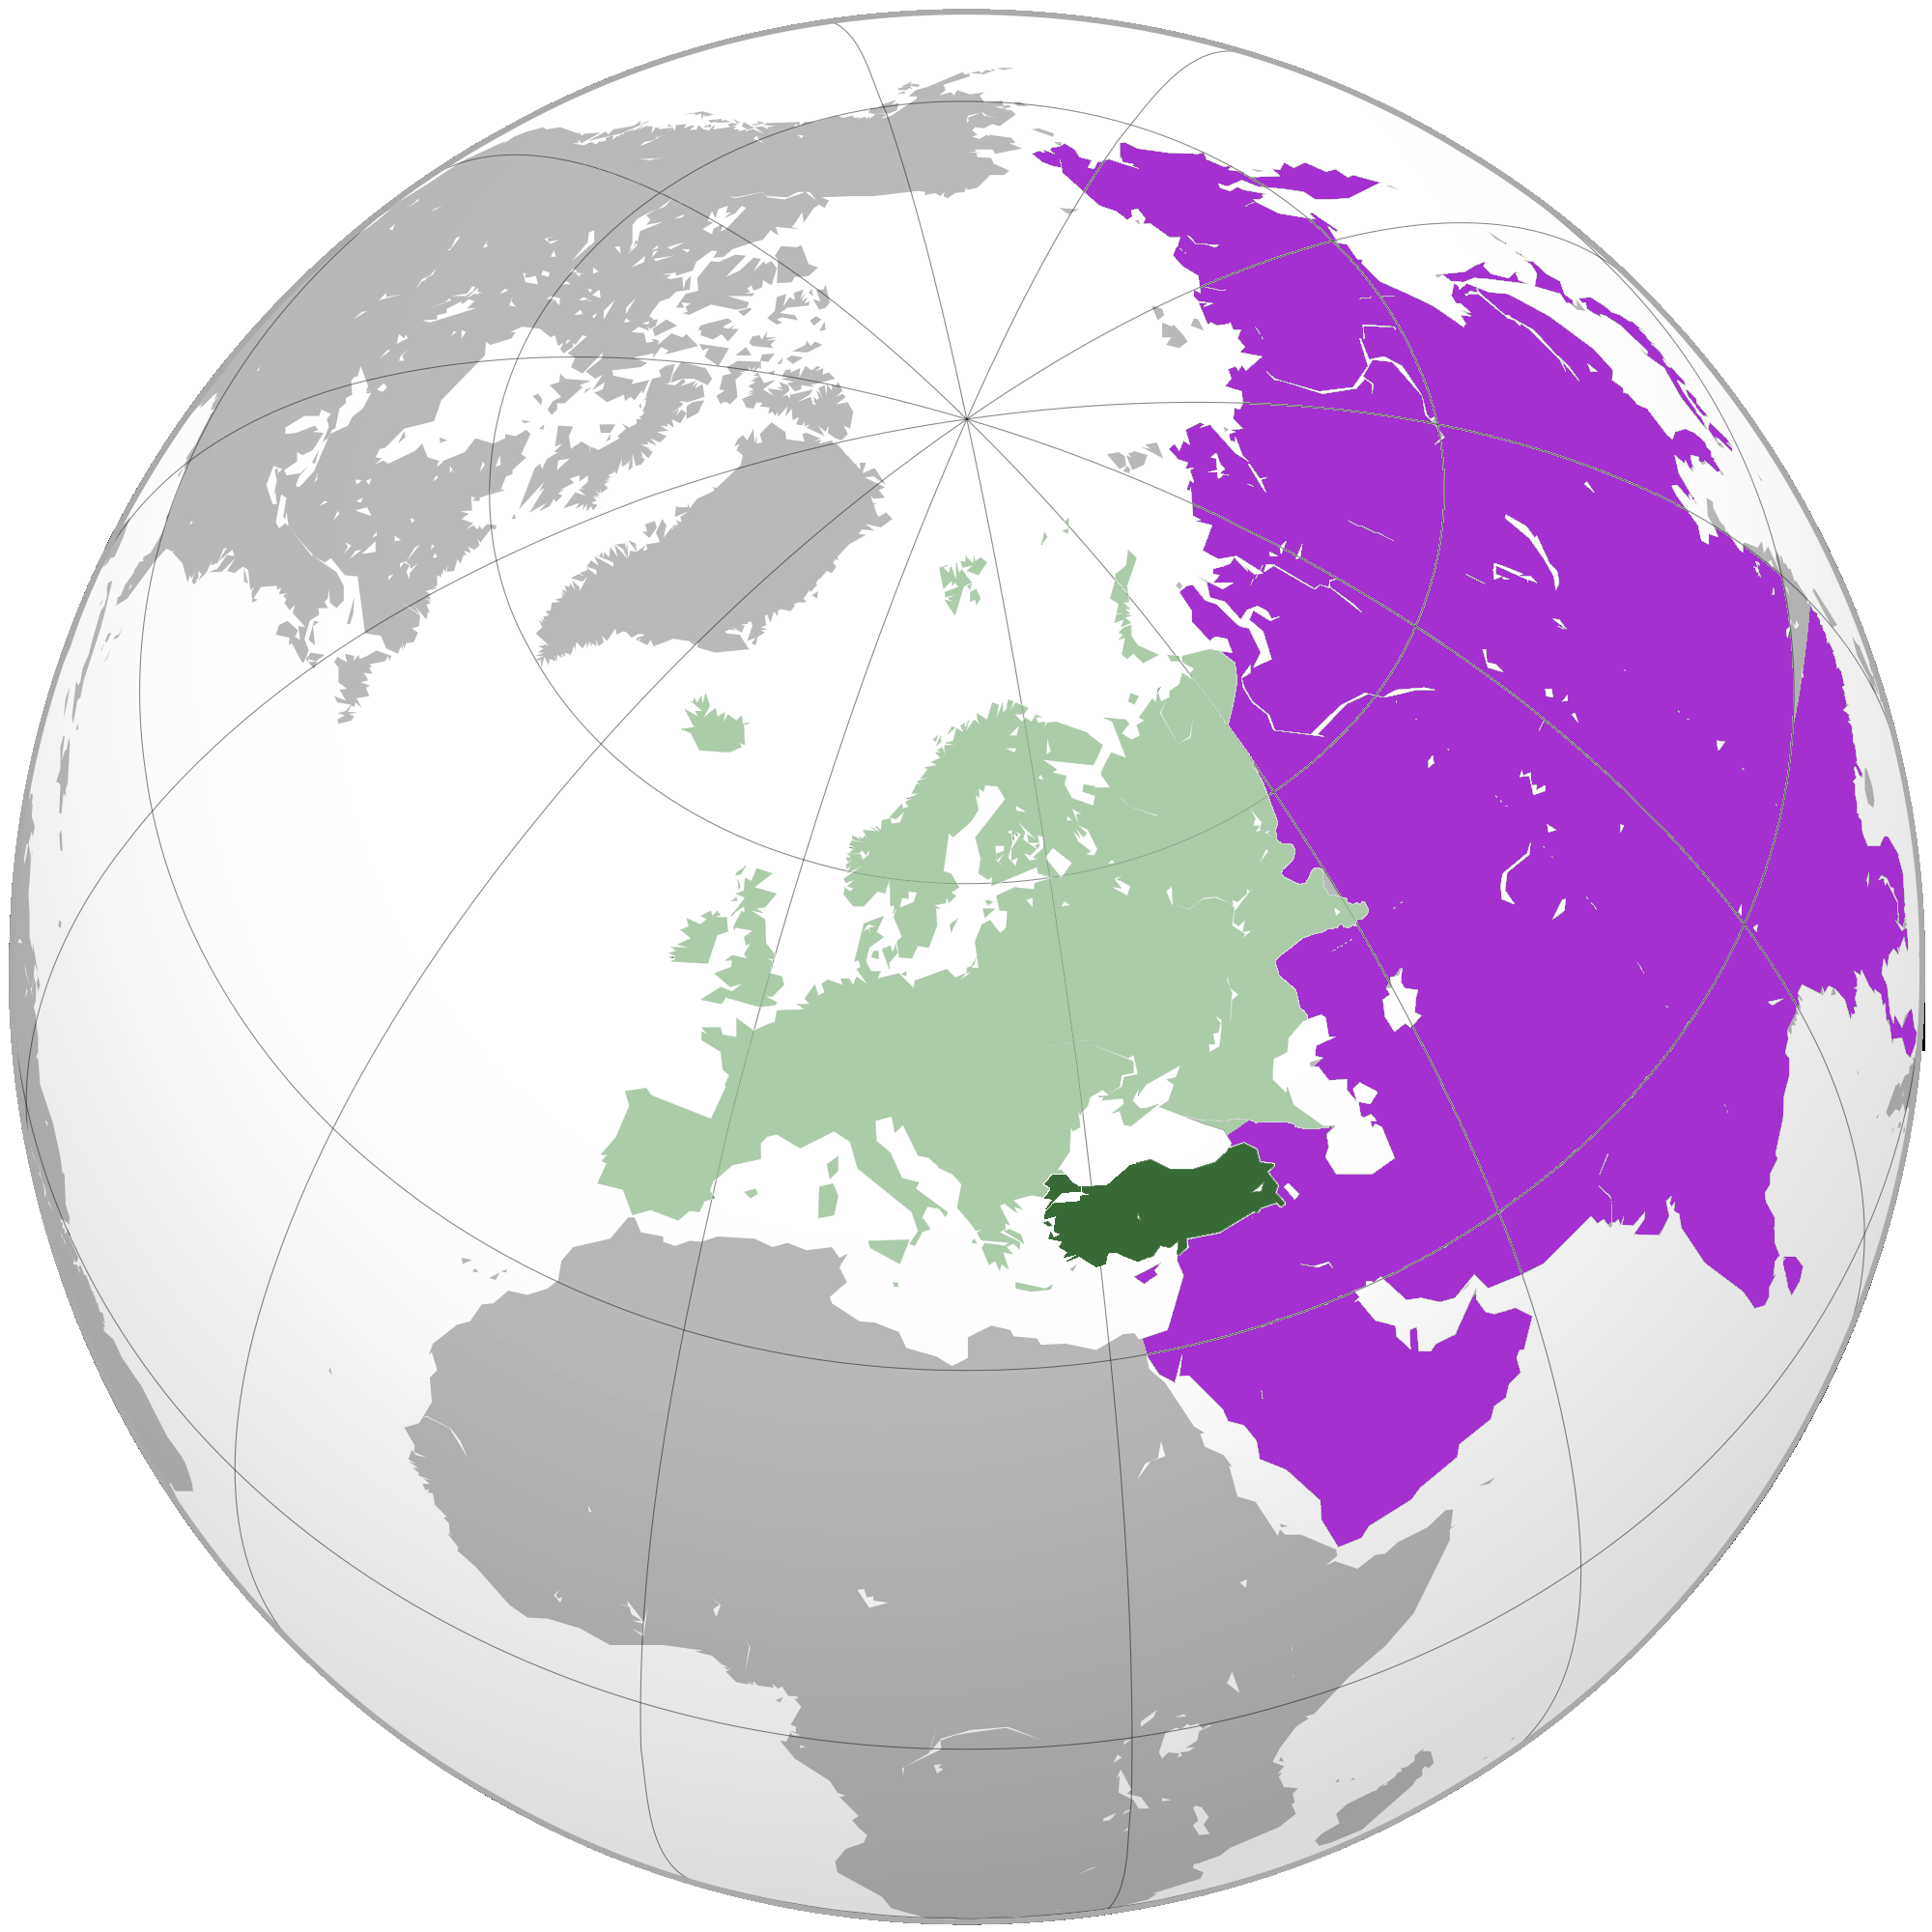 File:Turkey in the World.PNG - Wikimedia Commons